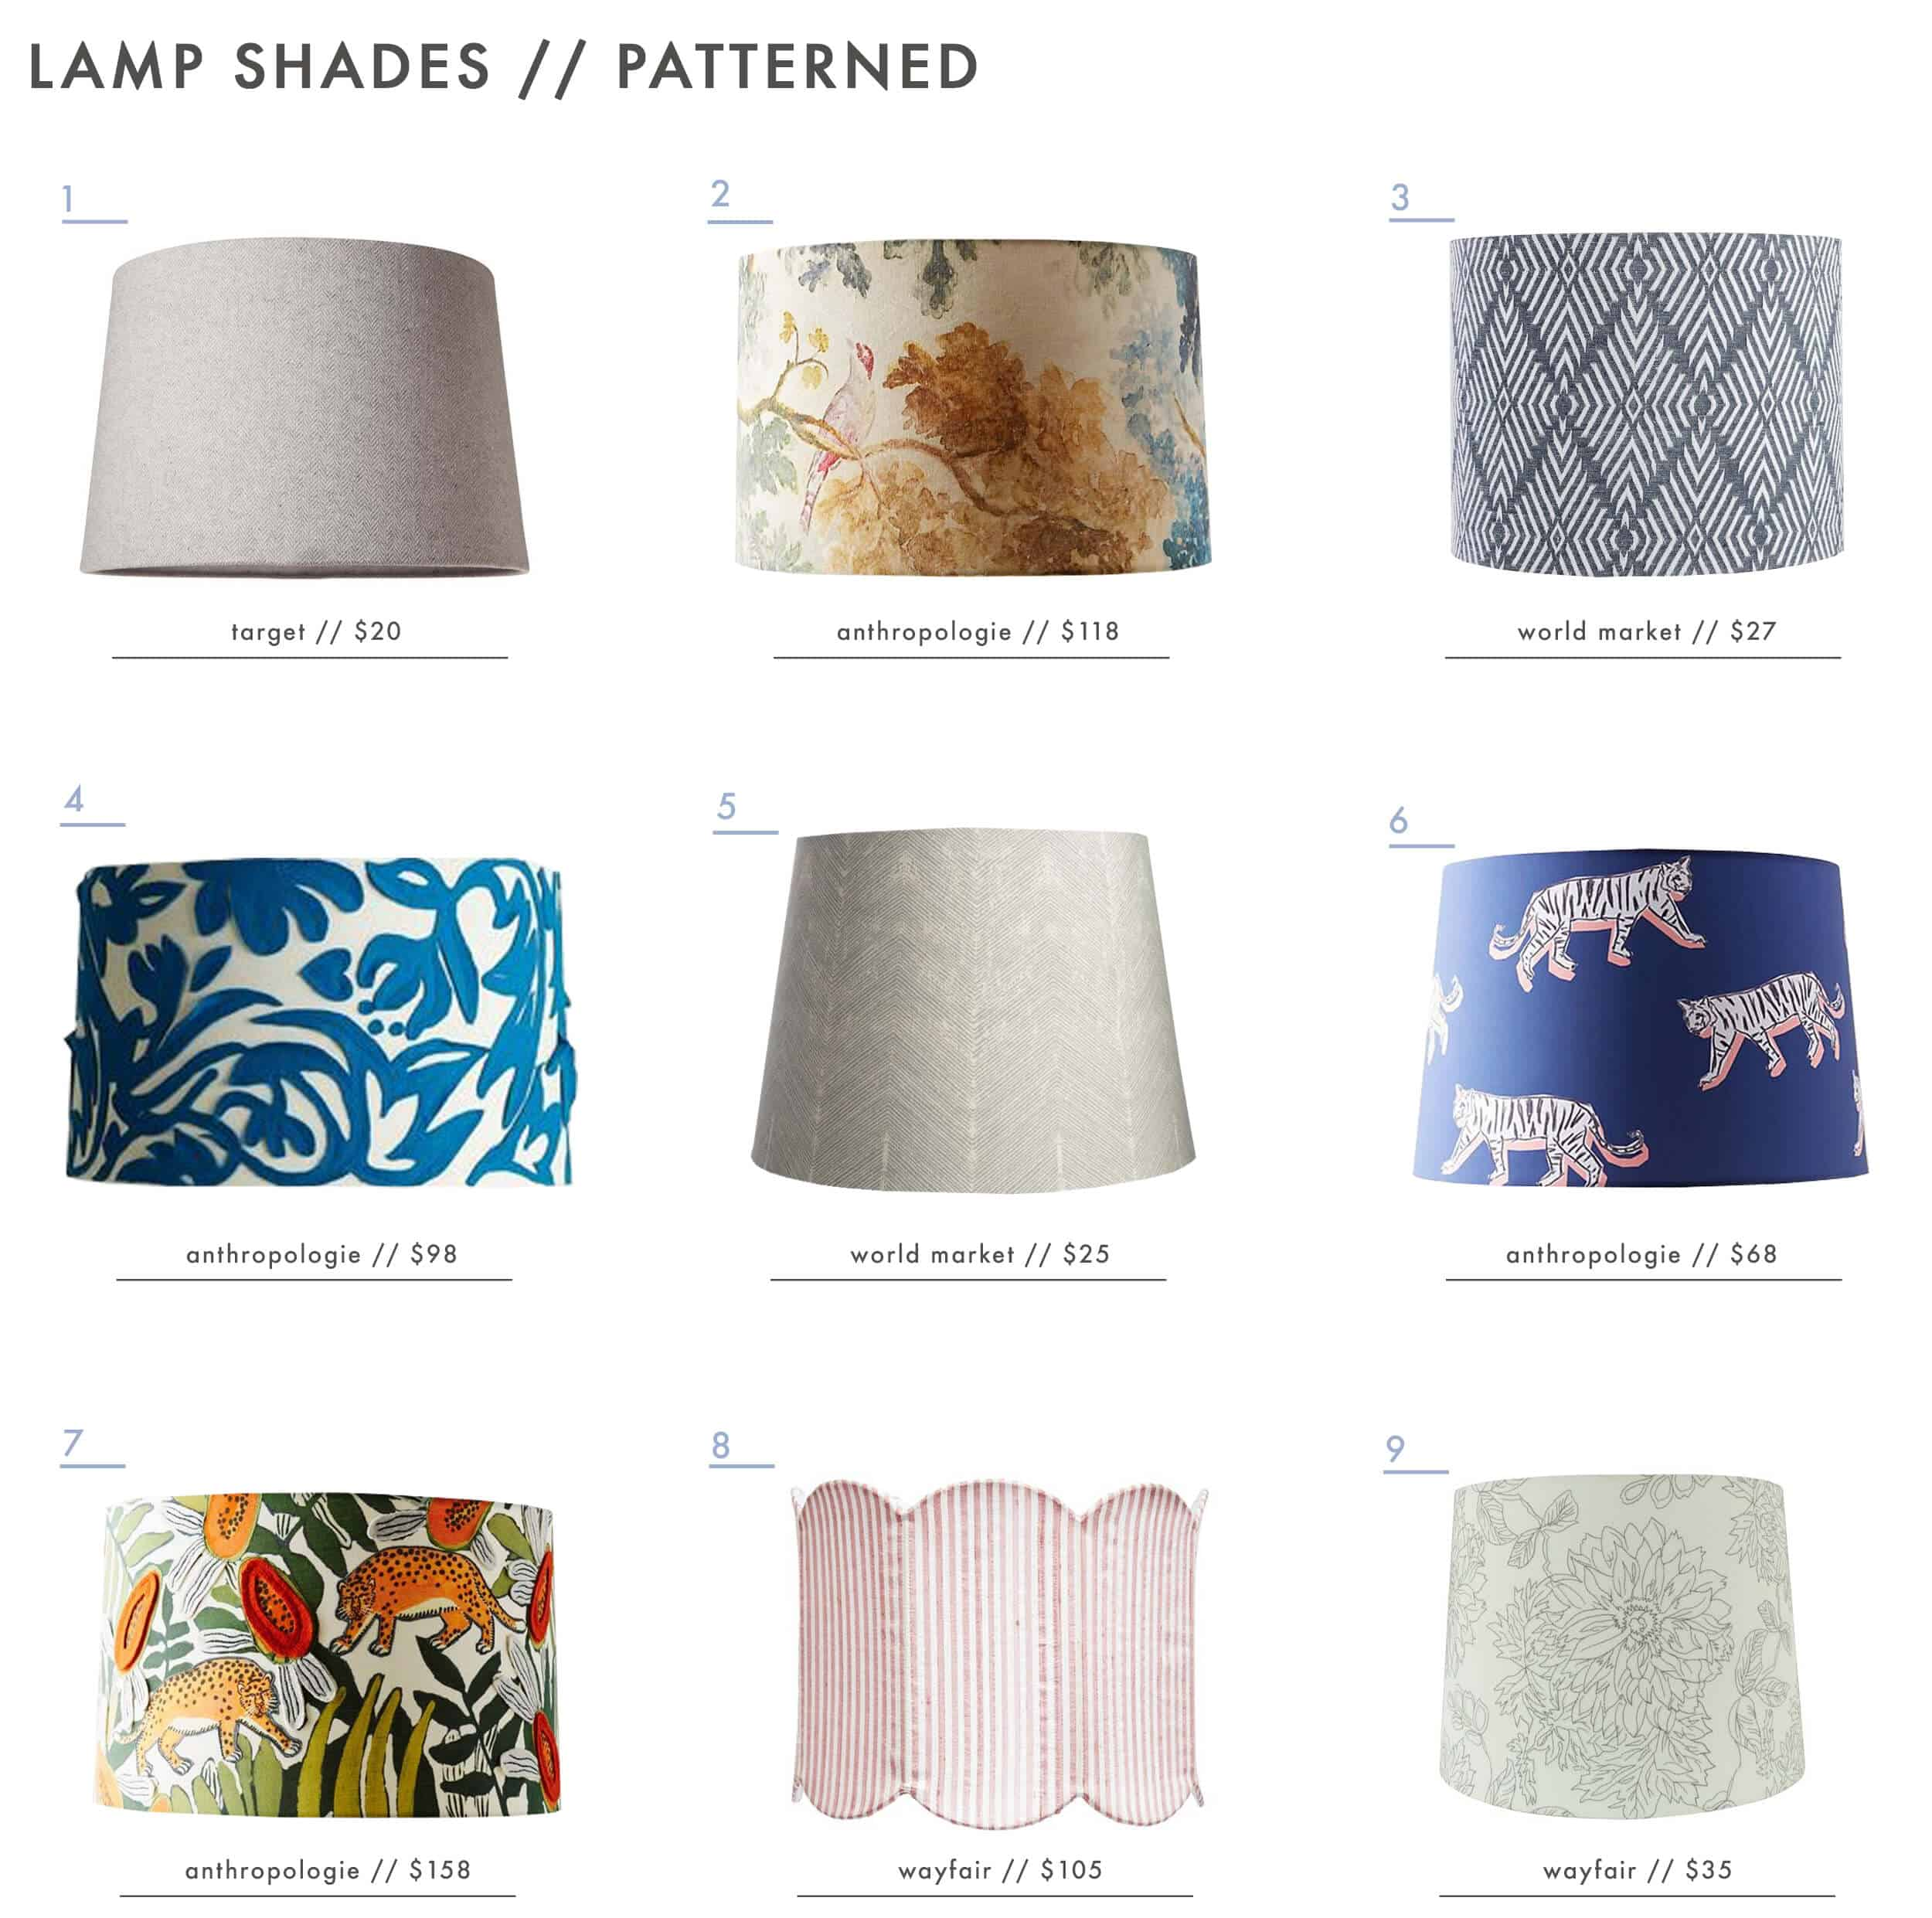 Emily-Henderson_Textured_Patterned_Colorful_Lamp-Shades_Patterned1